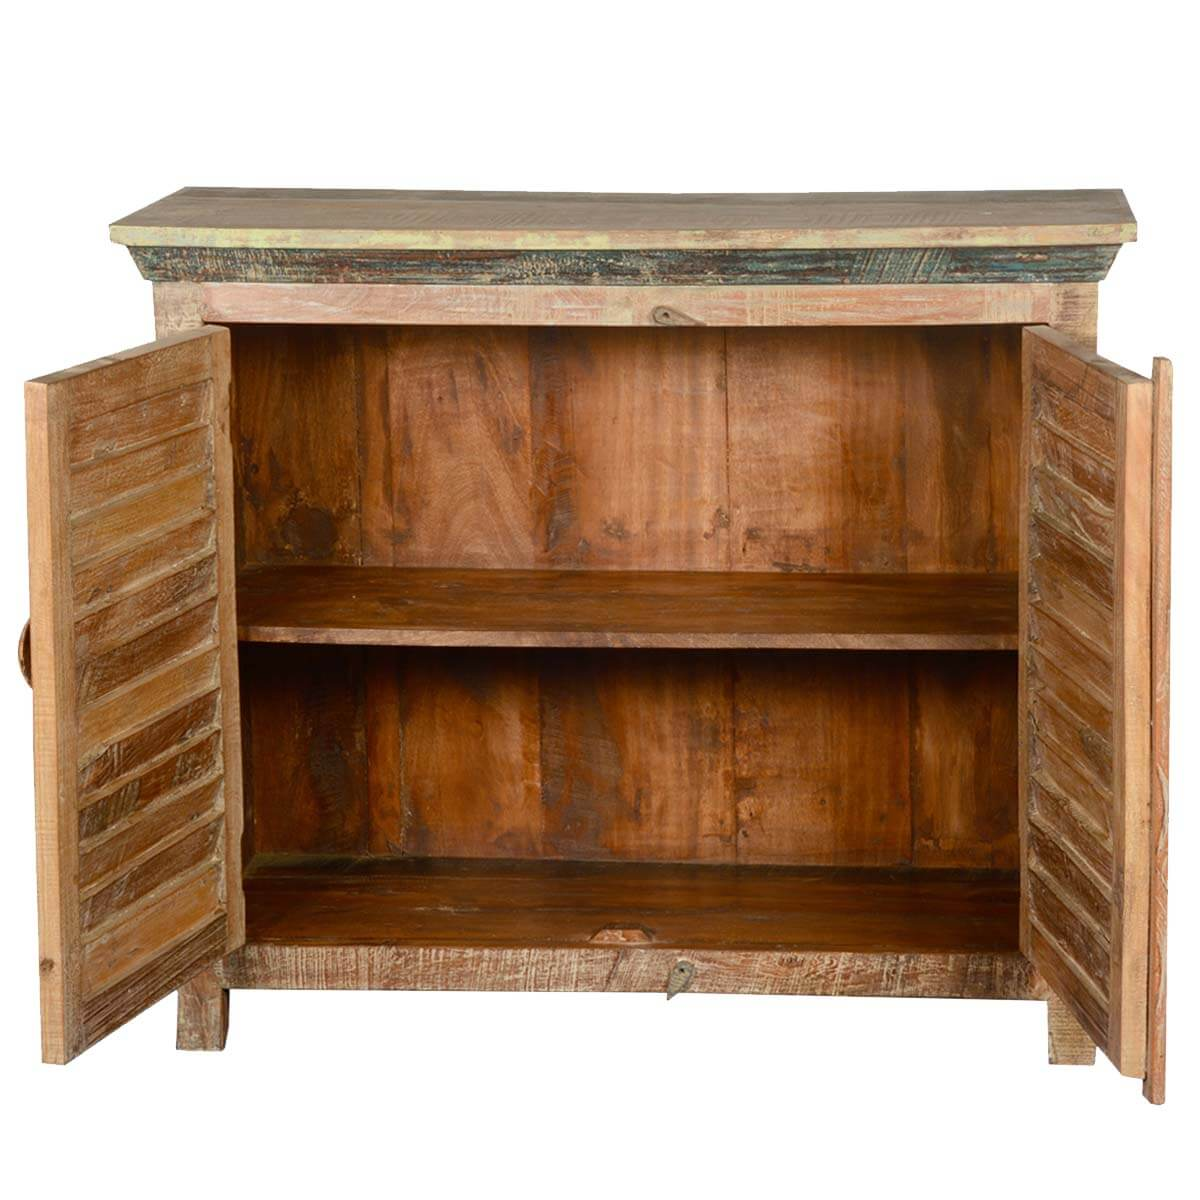 Distressed Reclaimed Wood Buffet 2 Door Kitchen Storage Accent Cabinet